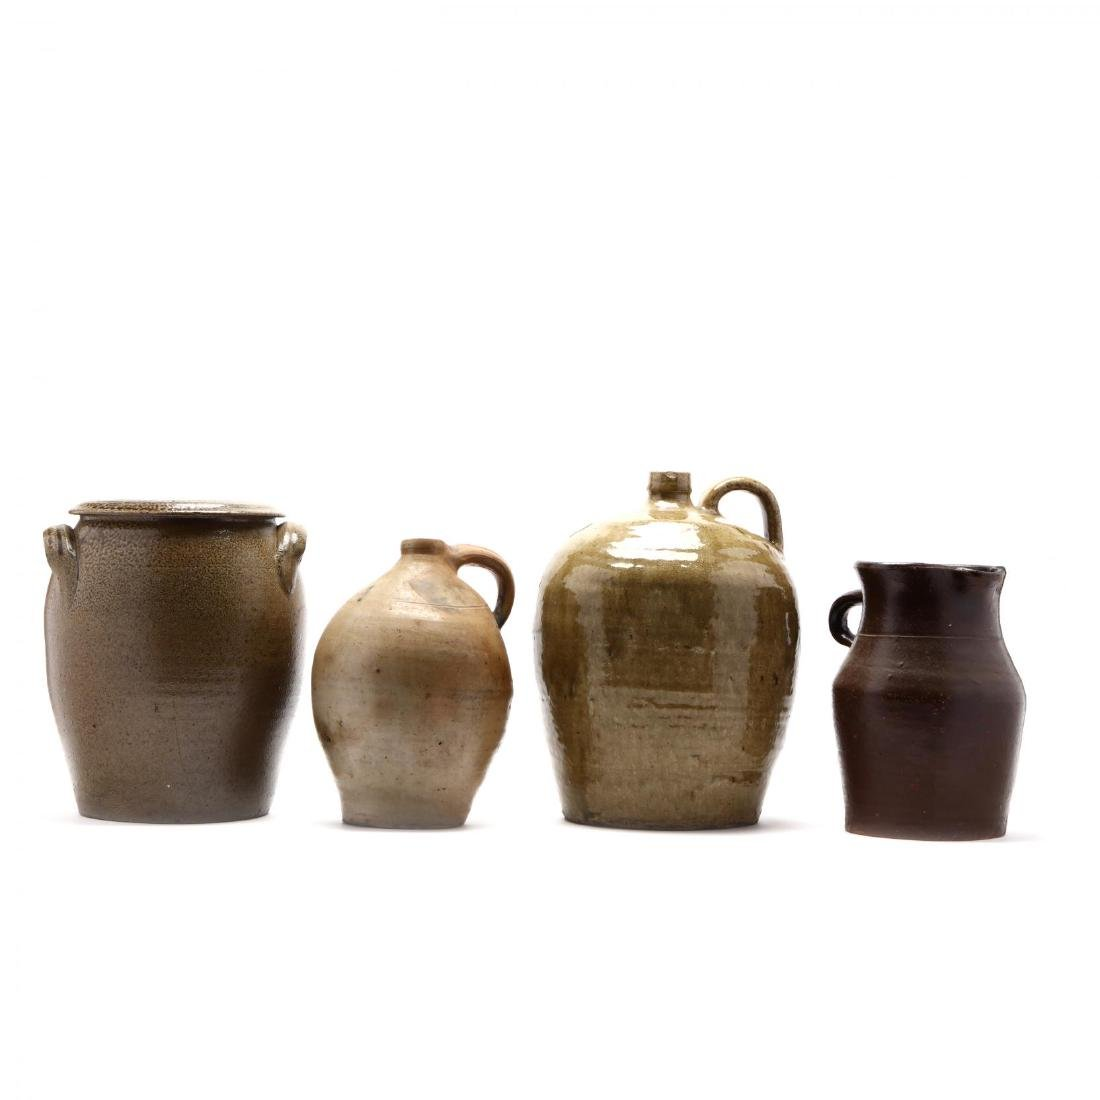 Four Utilitarian Pottery Vessels